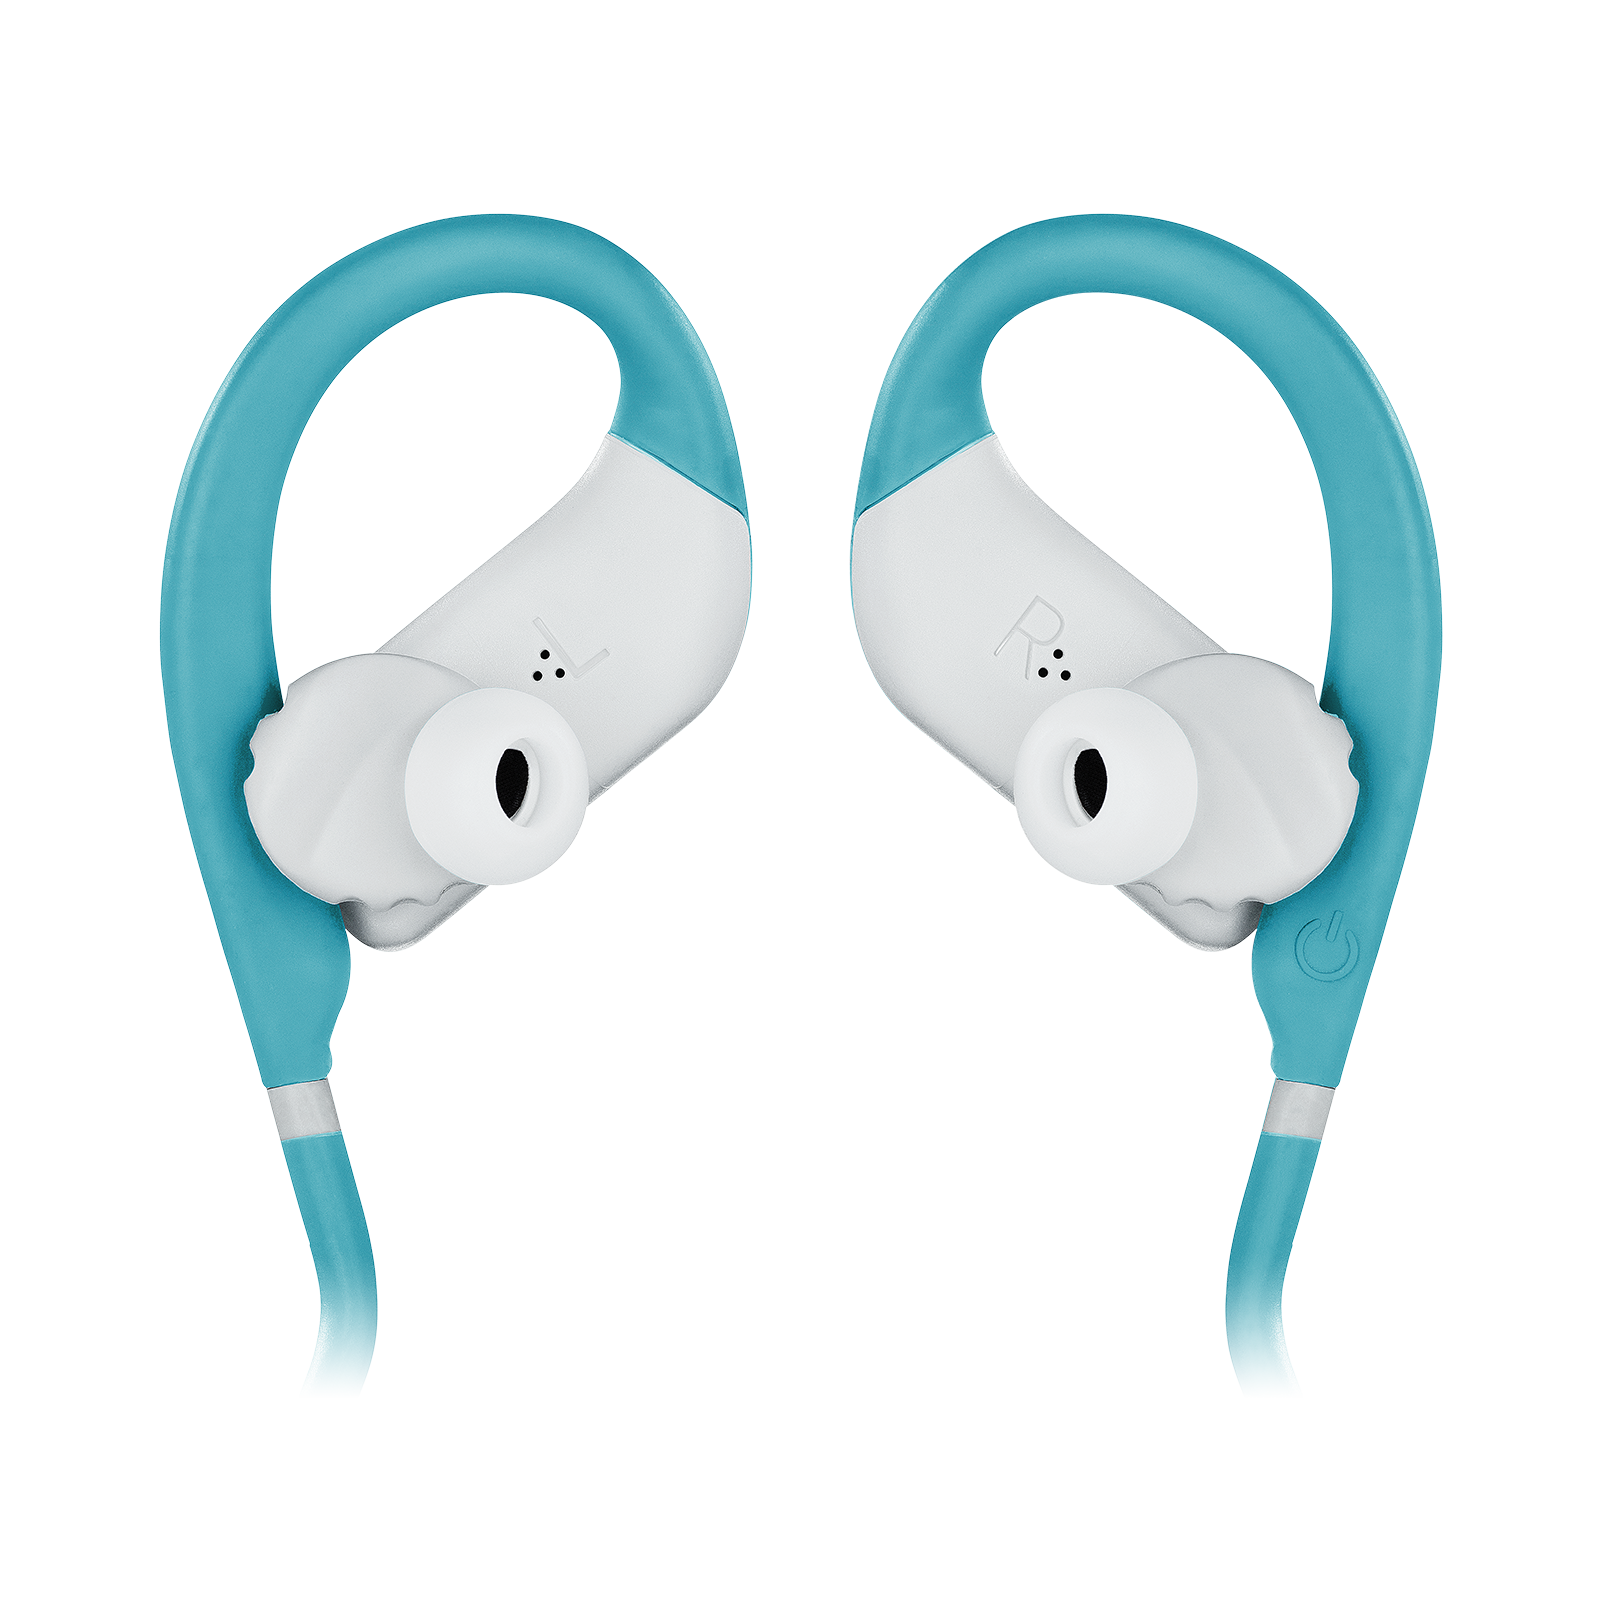 JBL Endurance JUMP - Teal - Waterproof Wireless Sport In-Ear Headphones - Detailshot 3